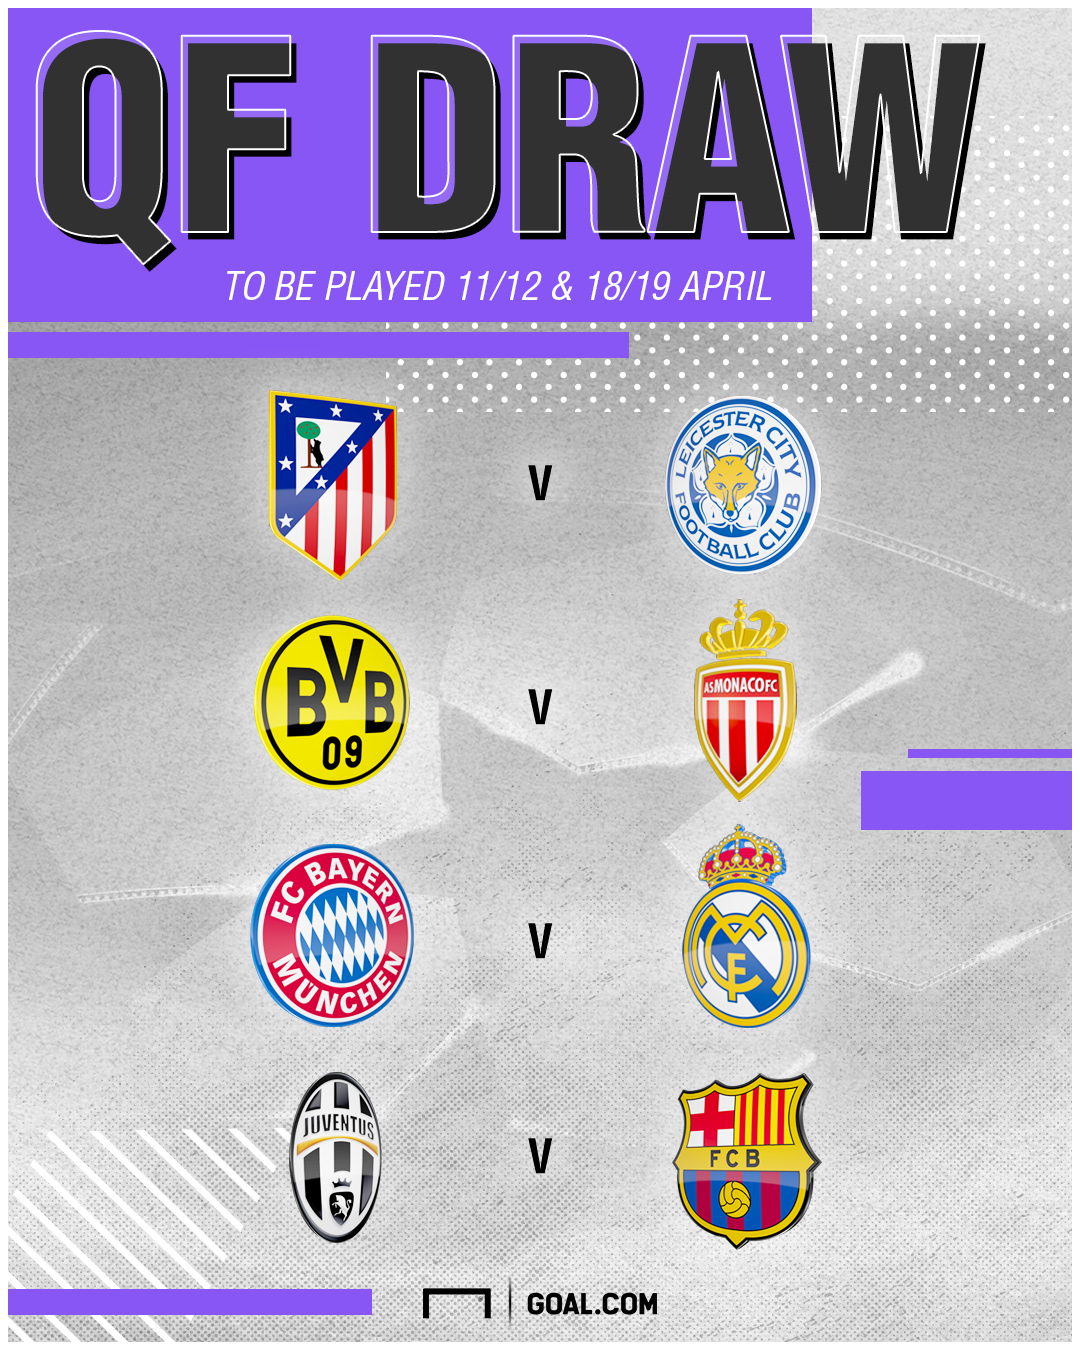 Champions League quarter-final ties